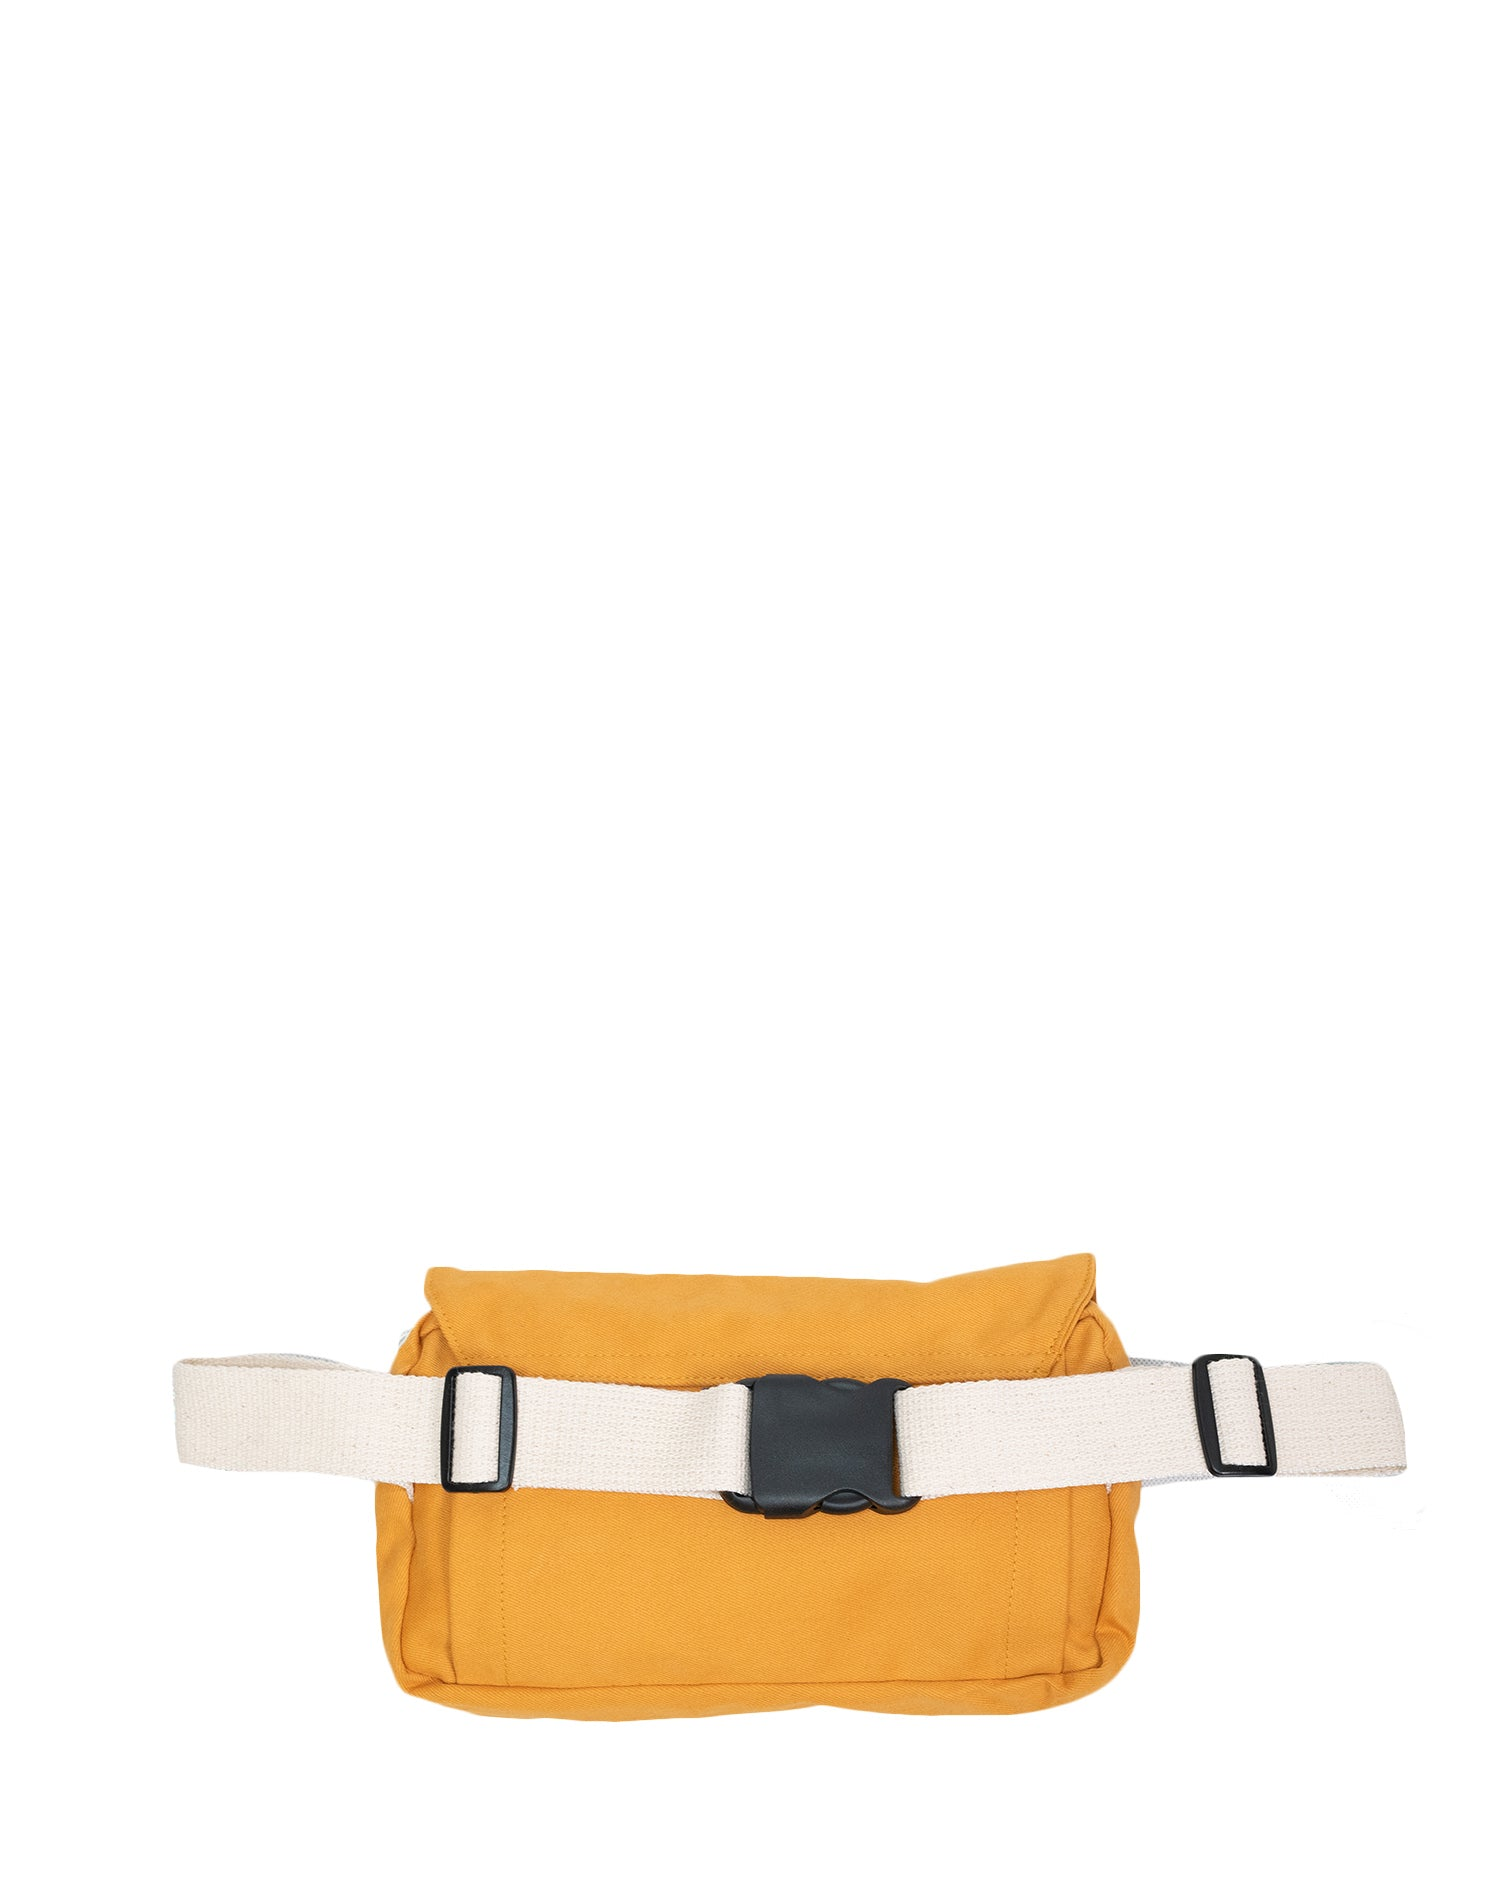 Yellow Mustard Keeply Belt Sling Bag.黃色帆布斜揹腰包